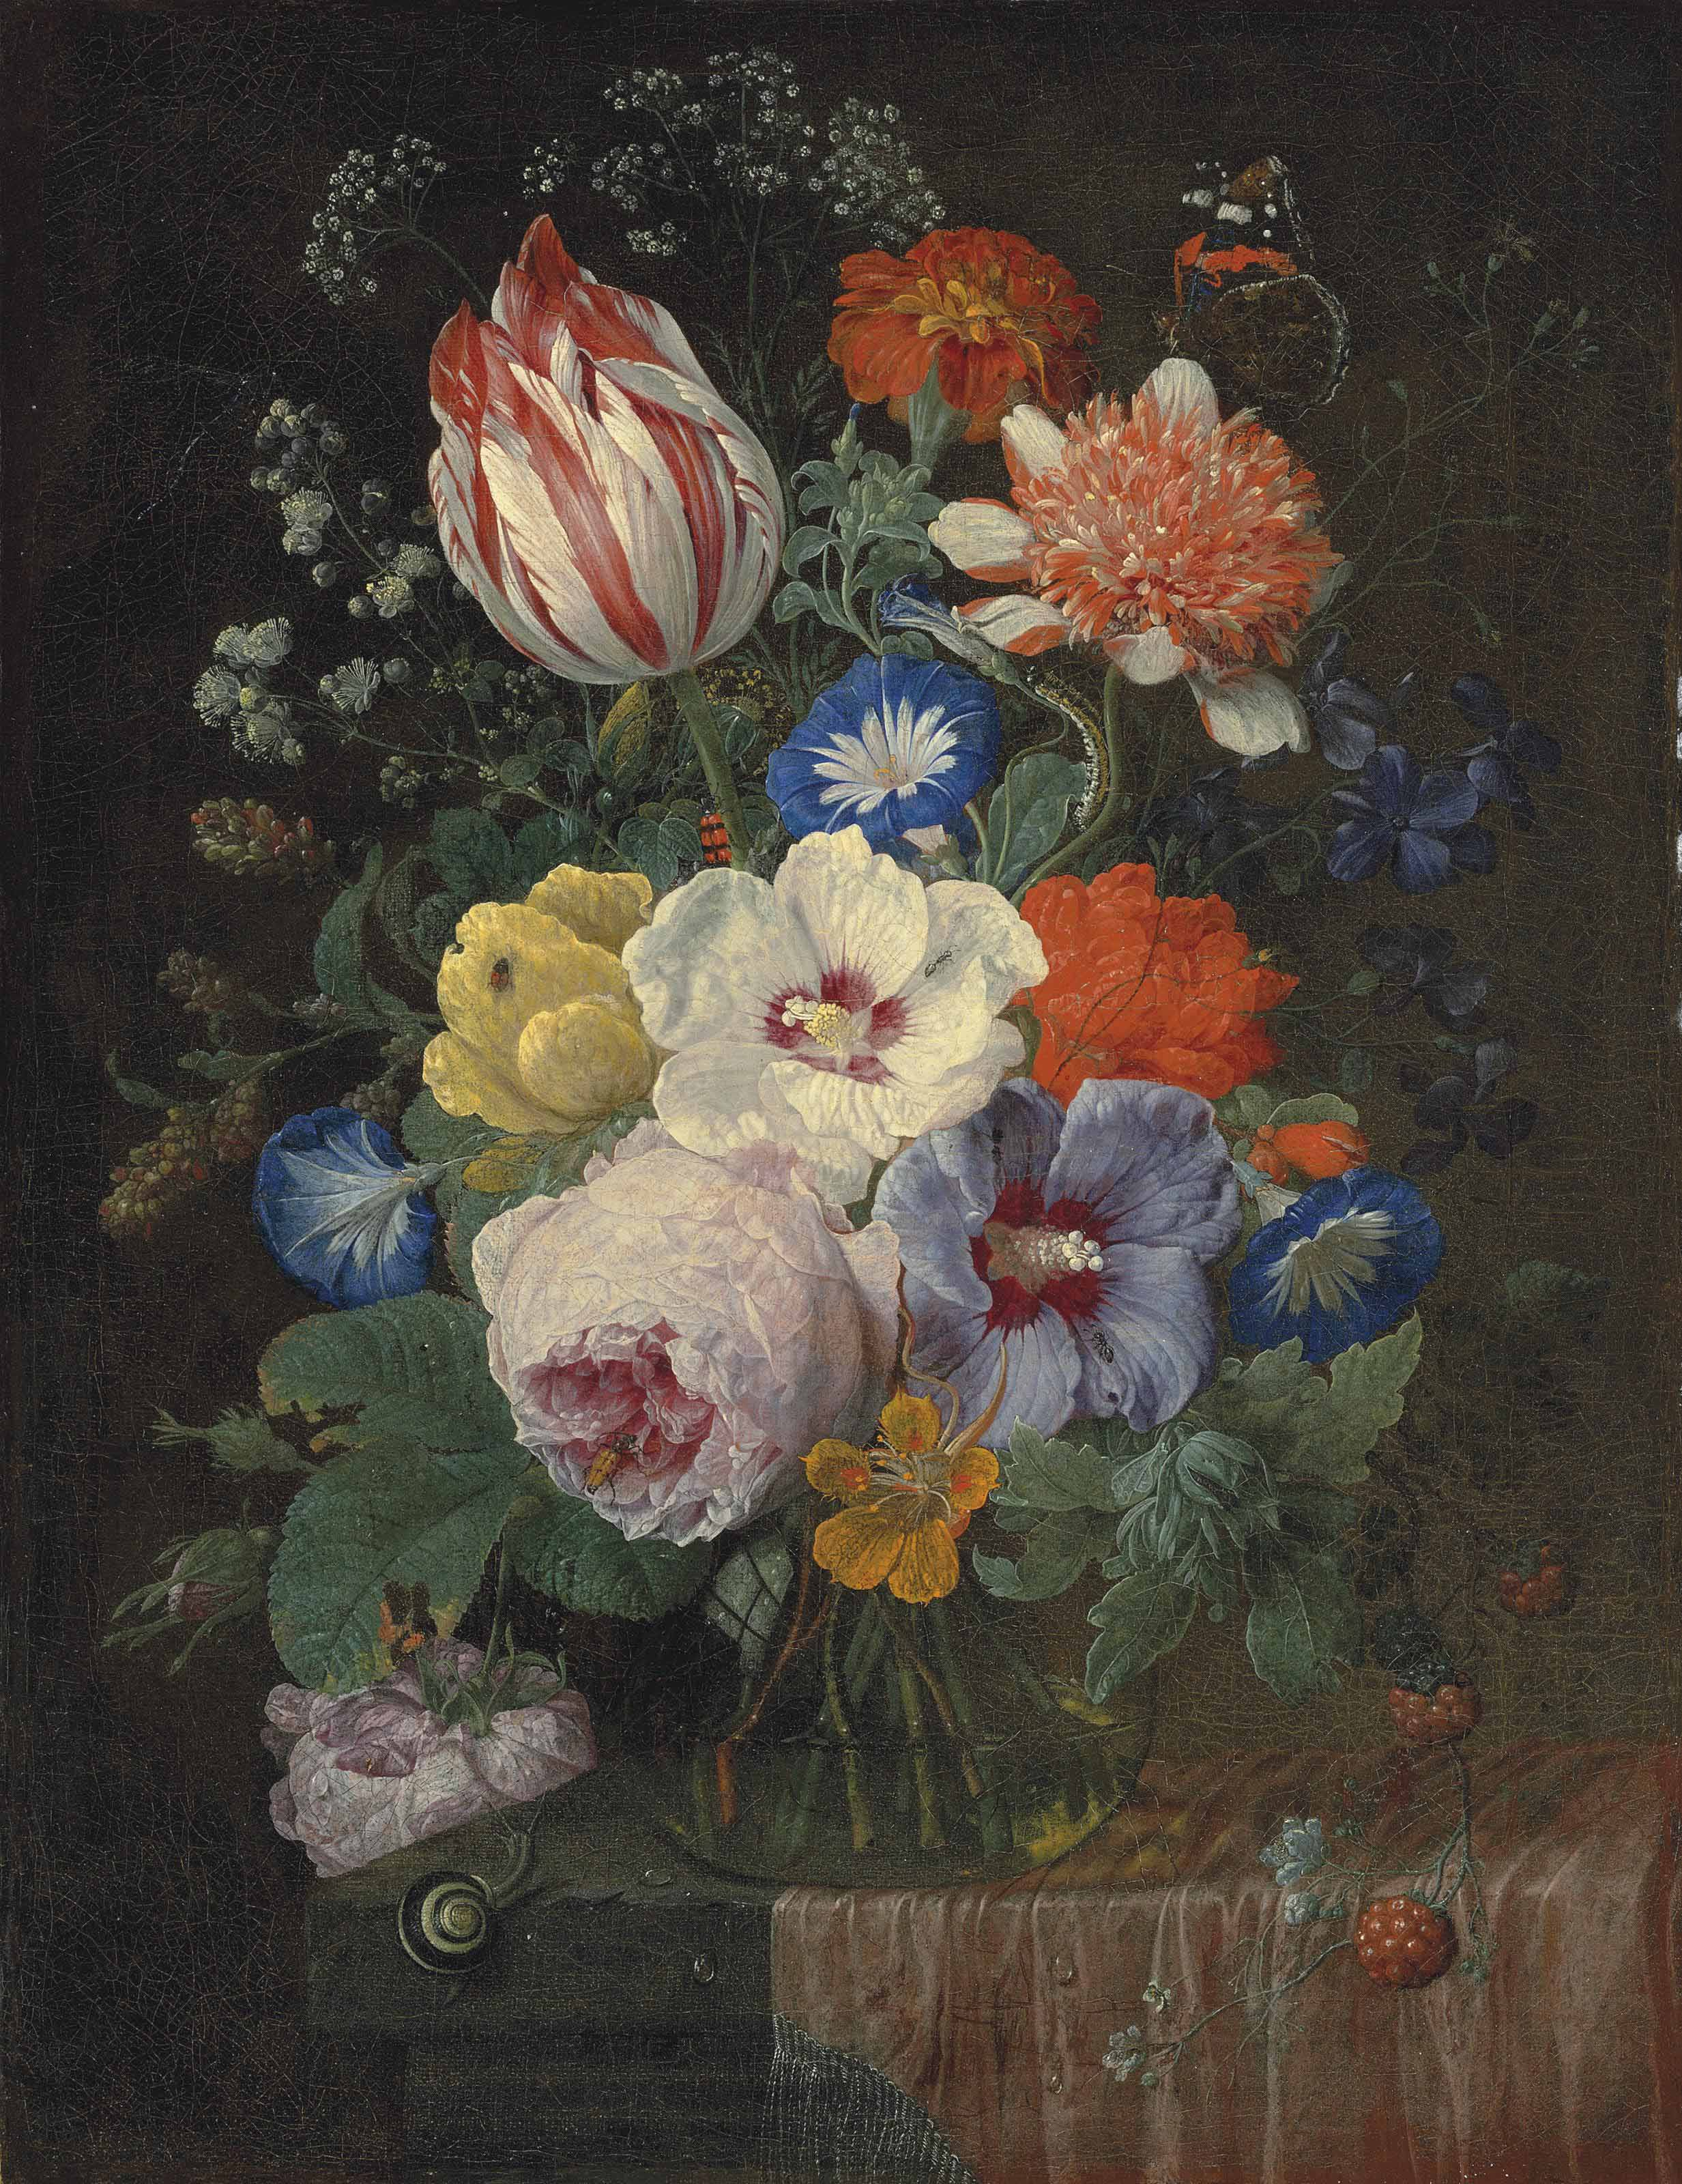 Peonies, carnations, morning glory, a Semper Augustus tulip and other flowers in a glass vase, with a snail, a butterfly, a dragonfly and other insects on a partially-draped ledge